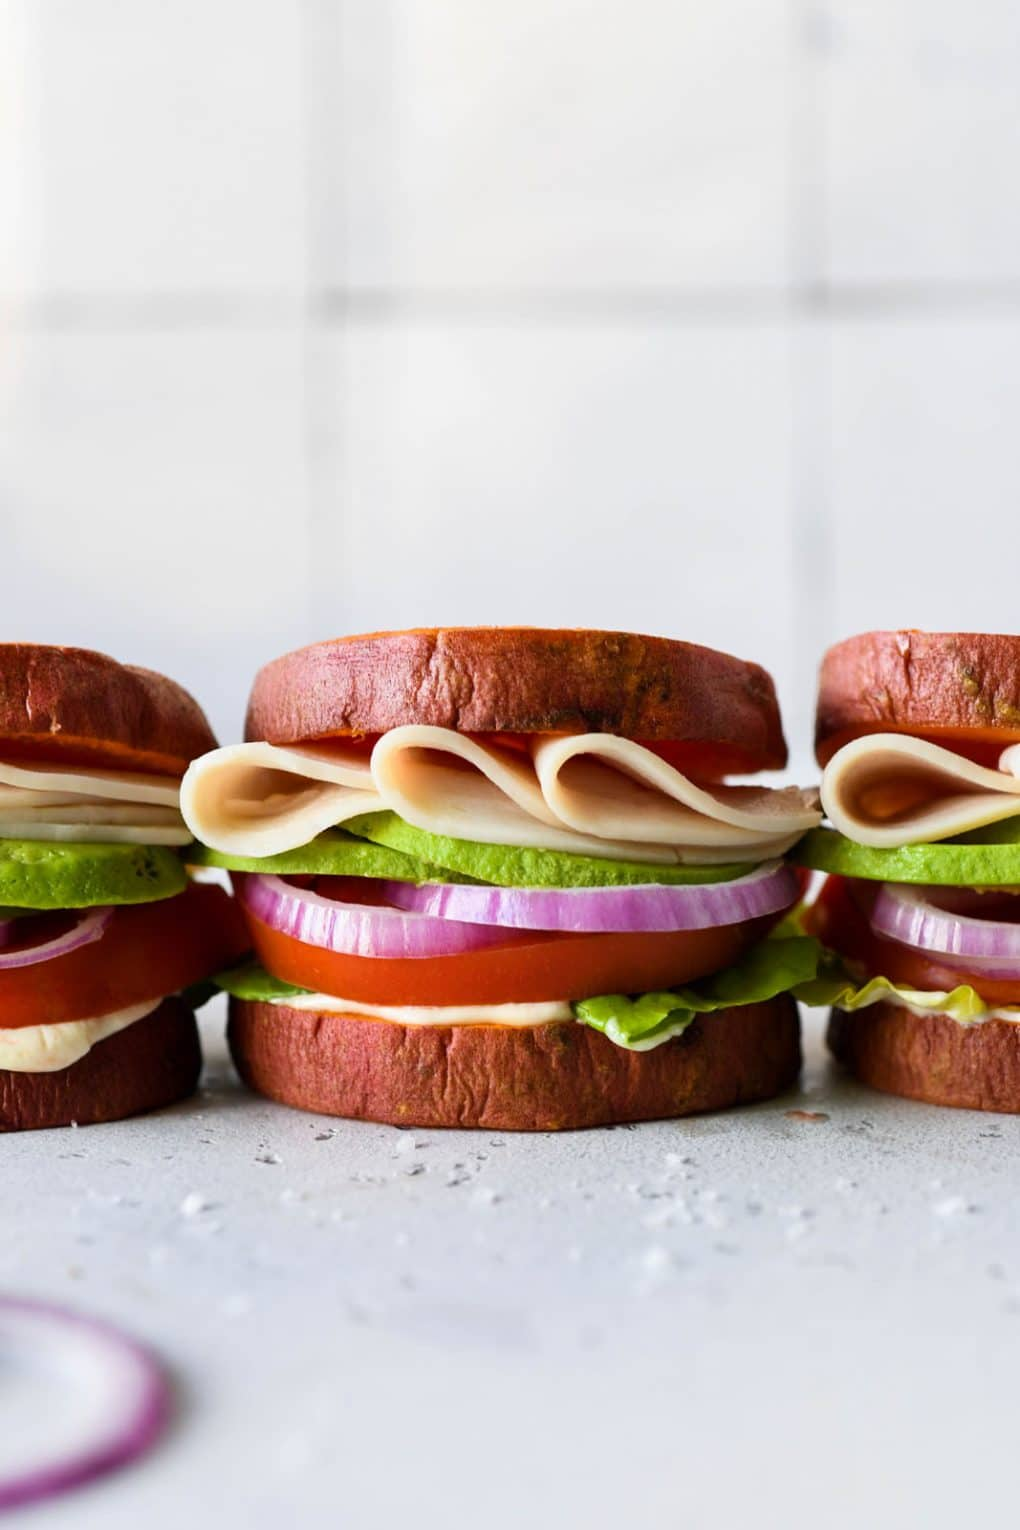 Straight on picture of little deli style turkey sandwiches made with roasted sweet potato rounds as buns. On a light background.